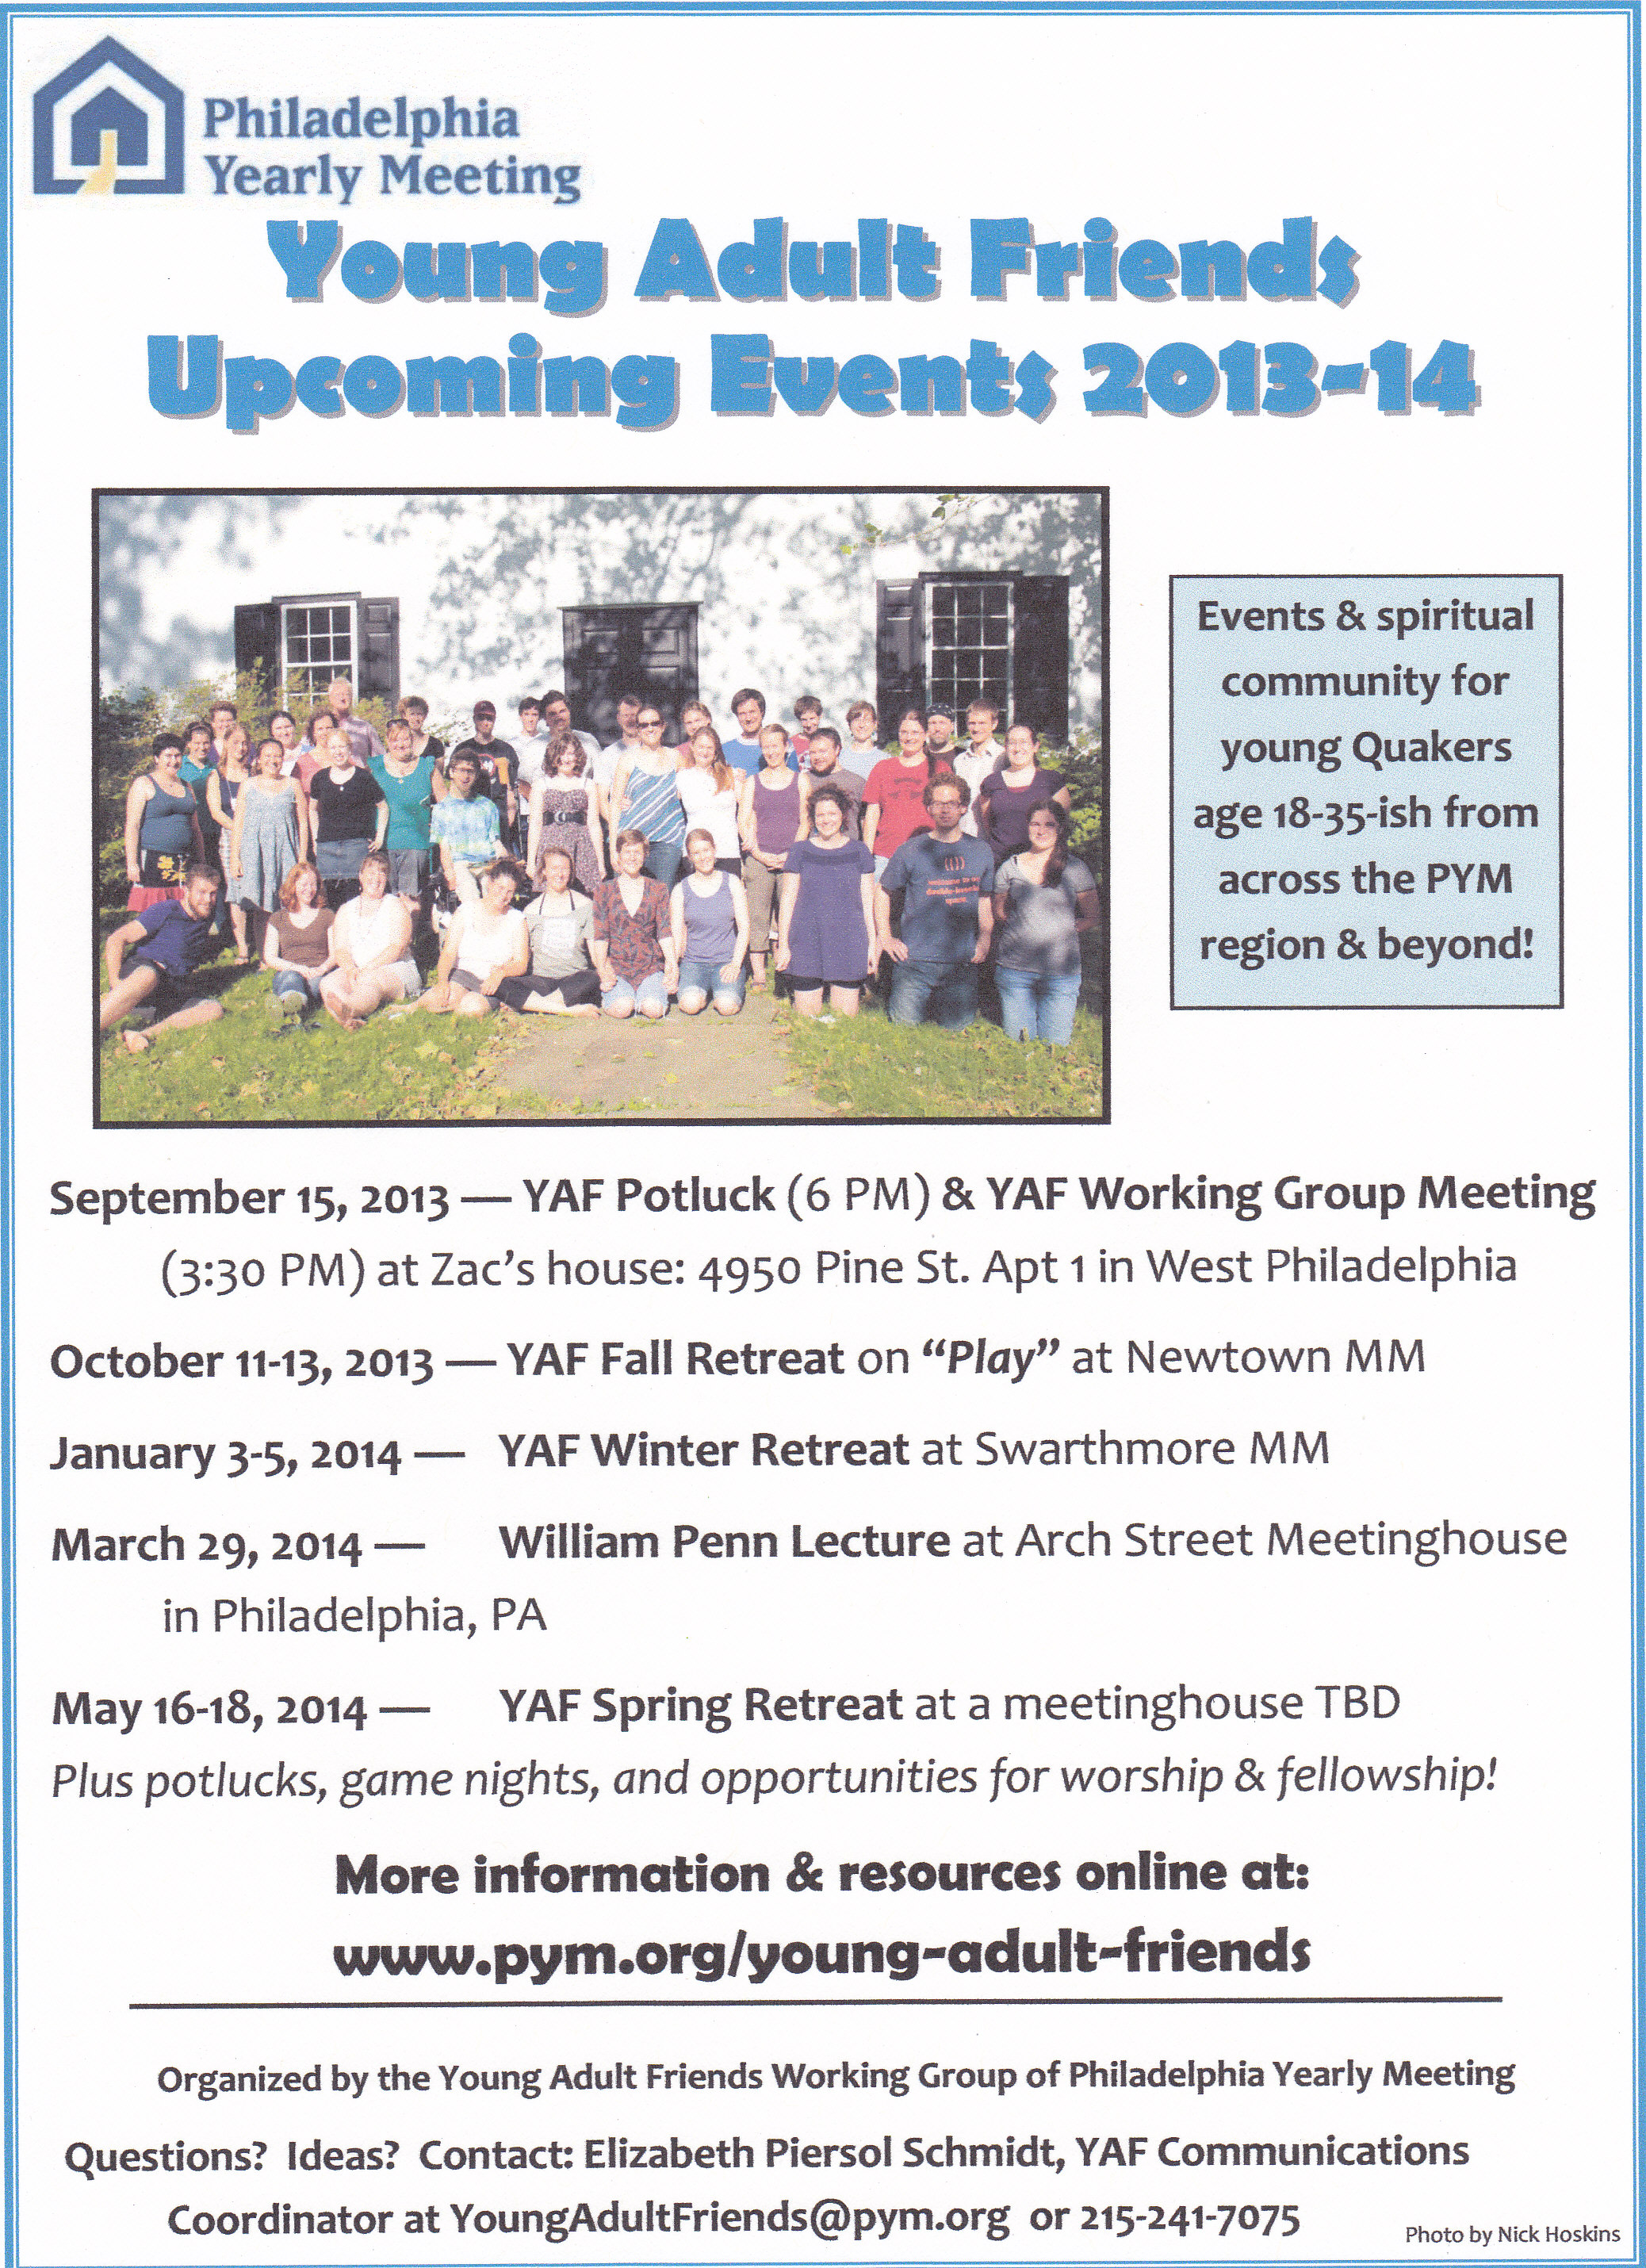 Final, Events for young adults serious?